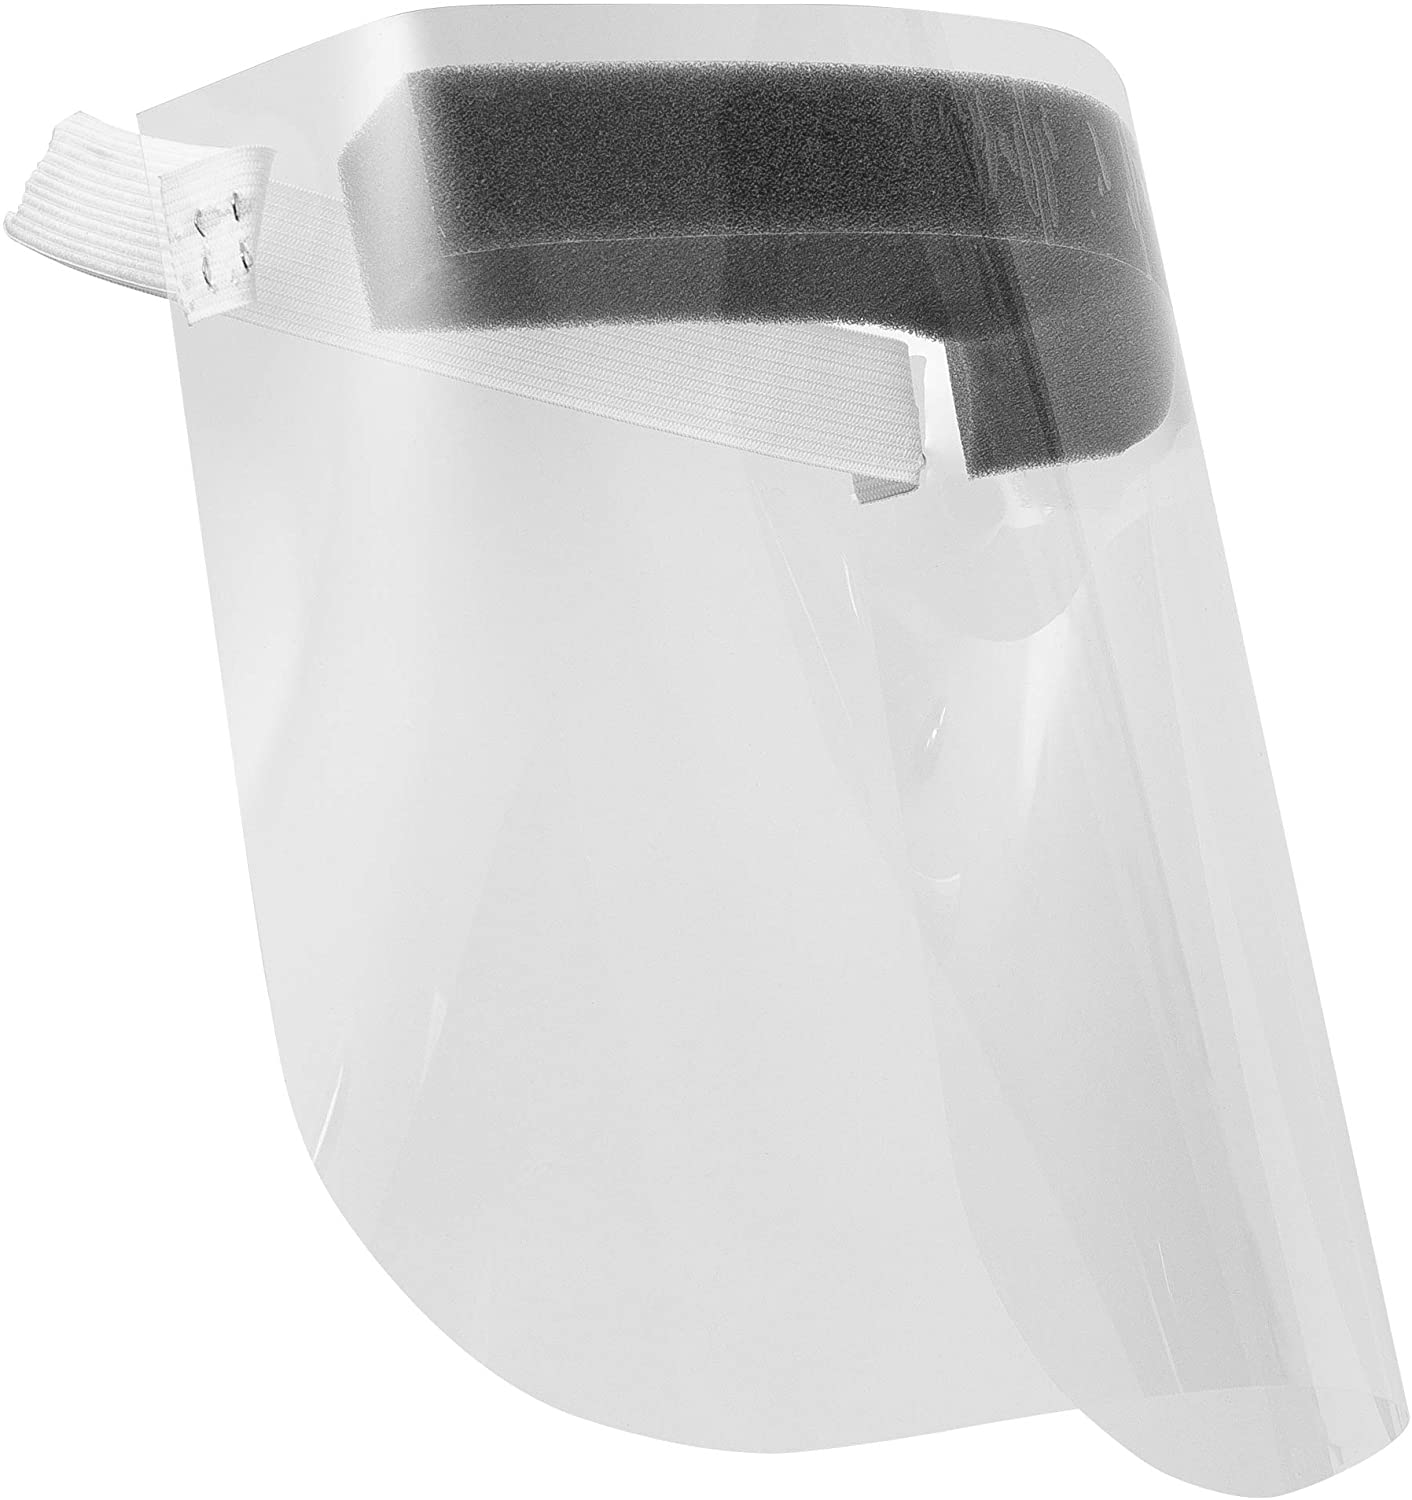 Face Shield with Latex Headband (Pack of 10)